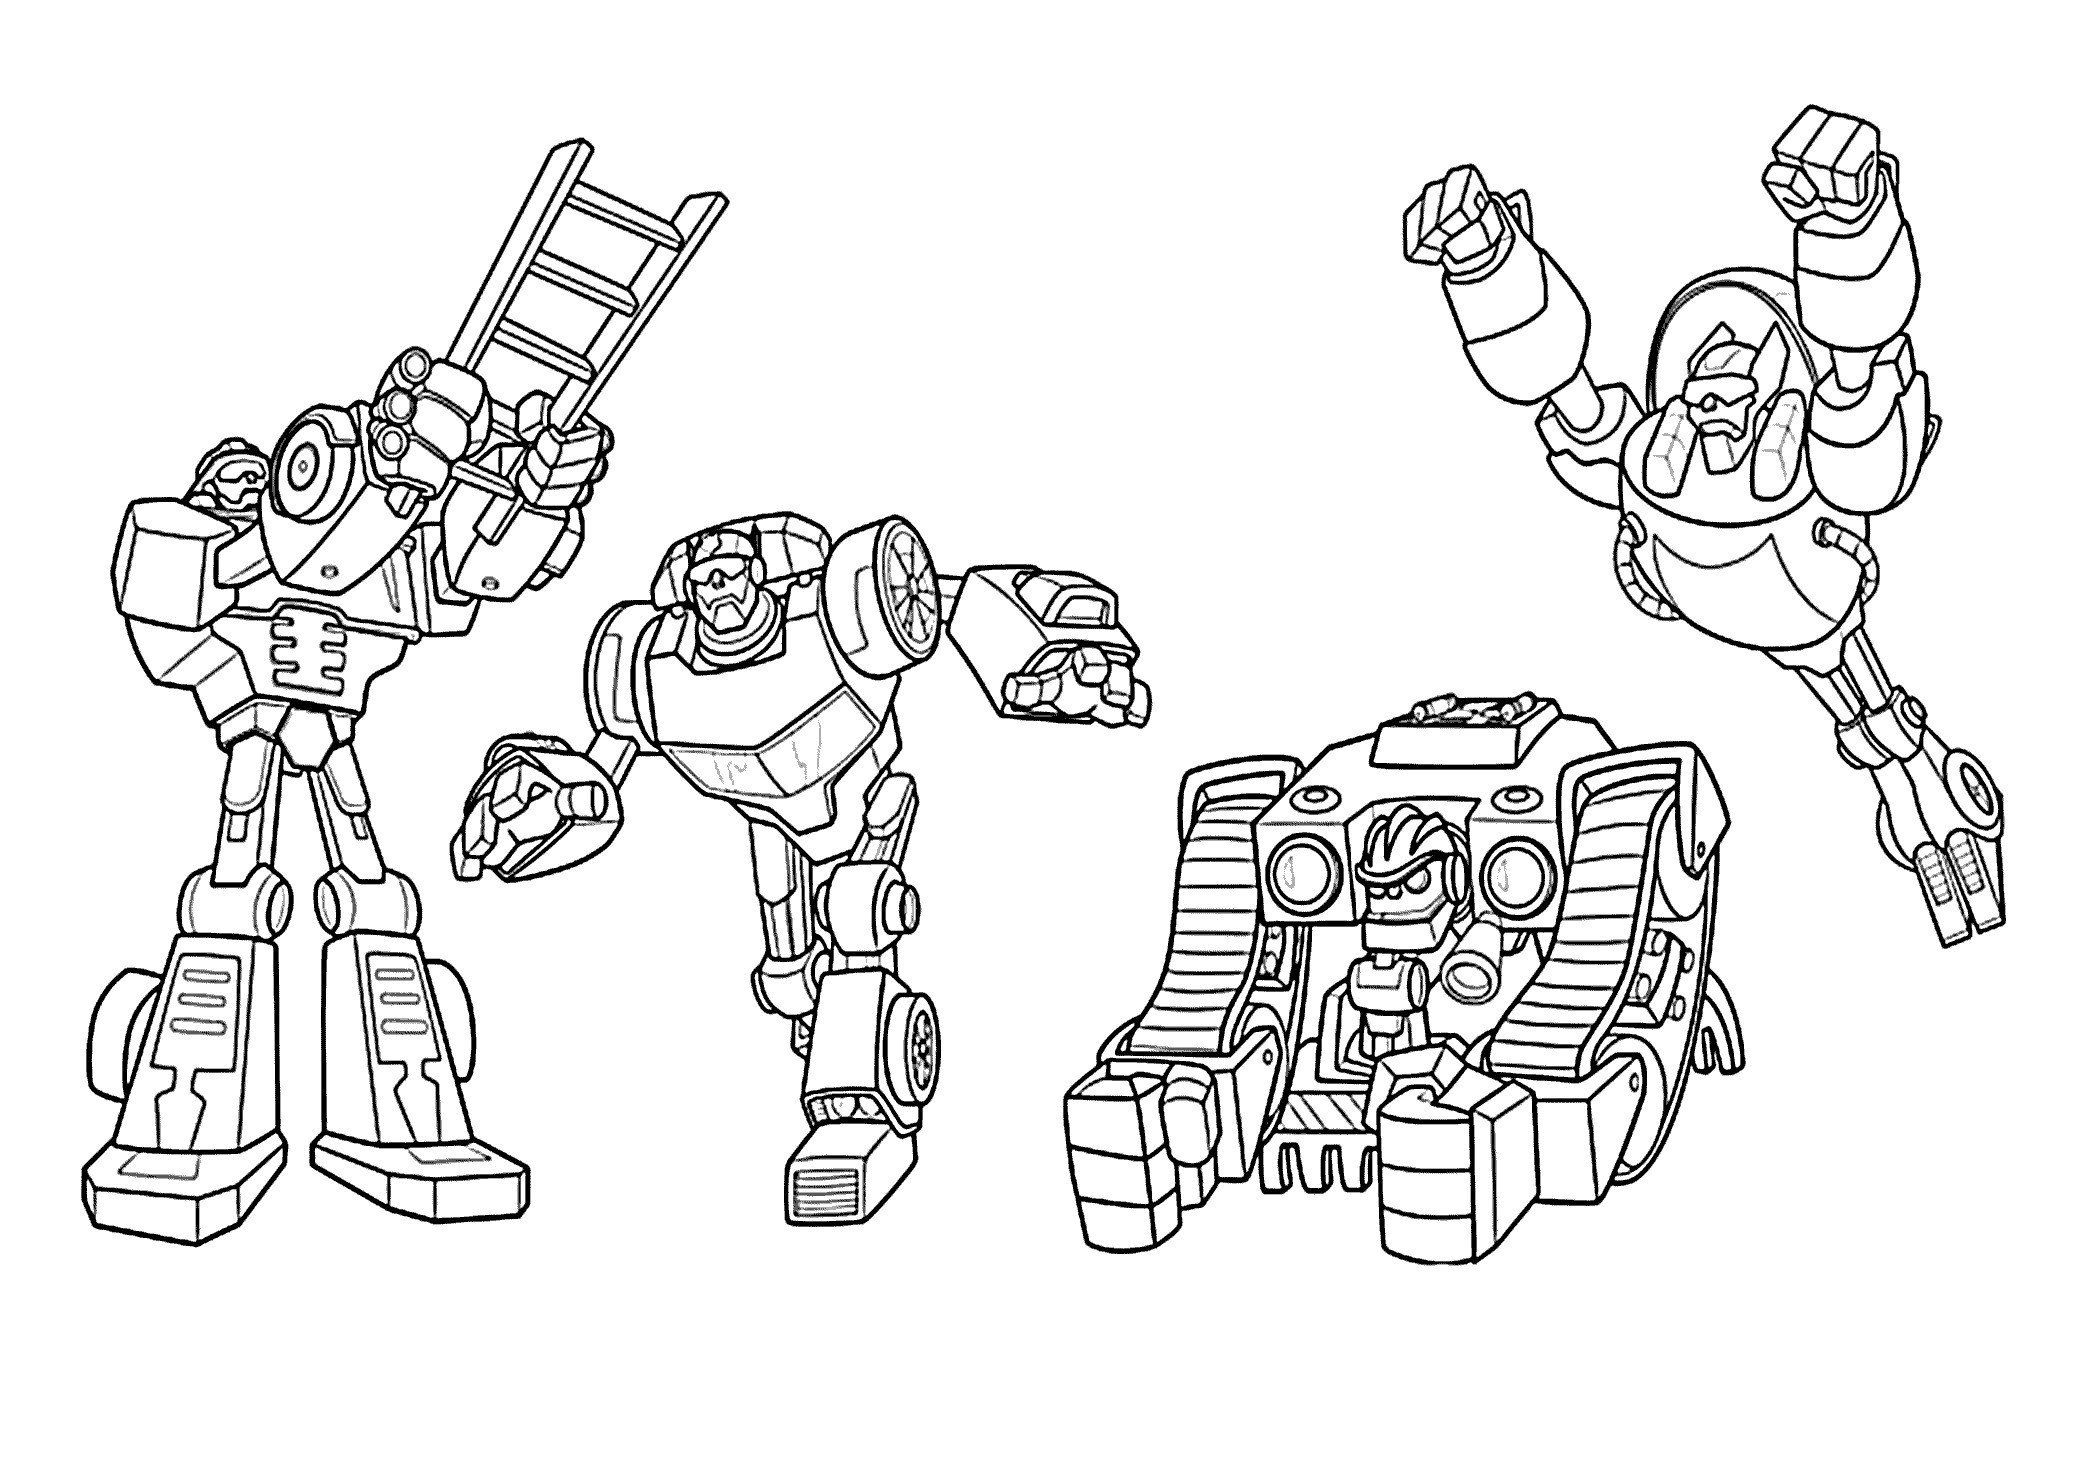 Blaze and the Monster Machines Coloring Pages Elegant